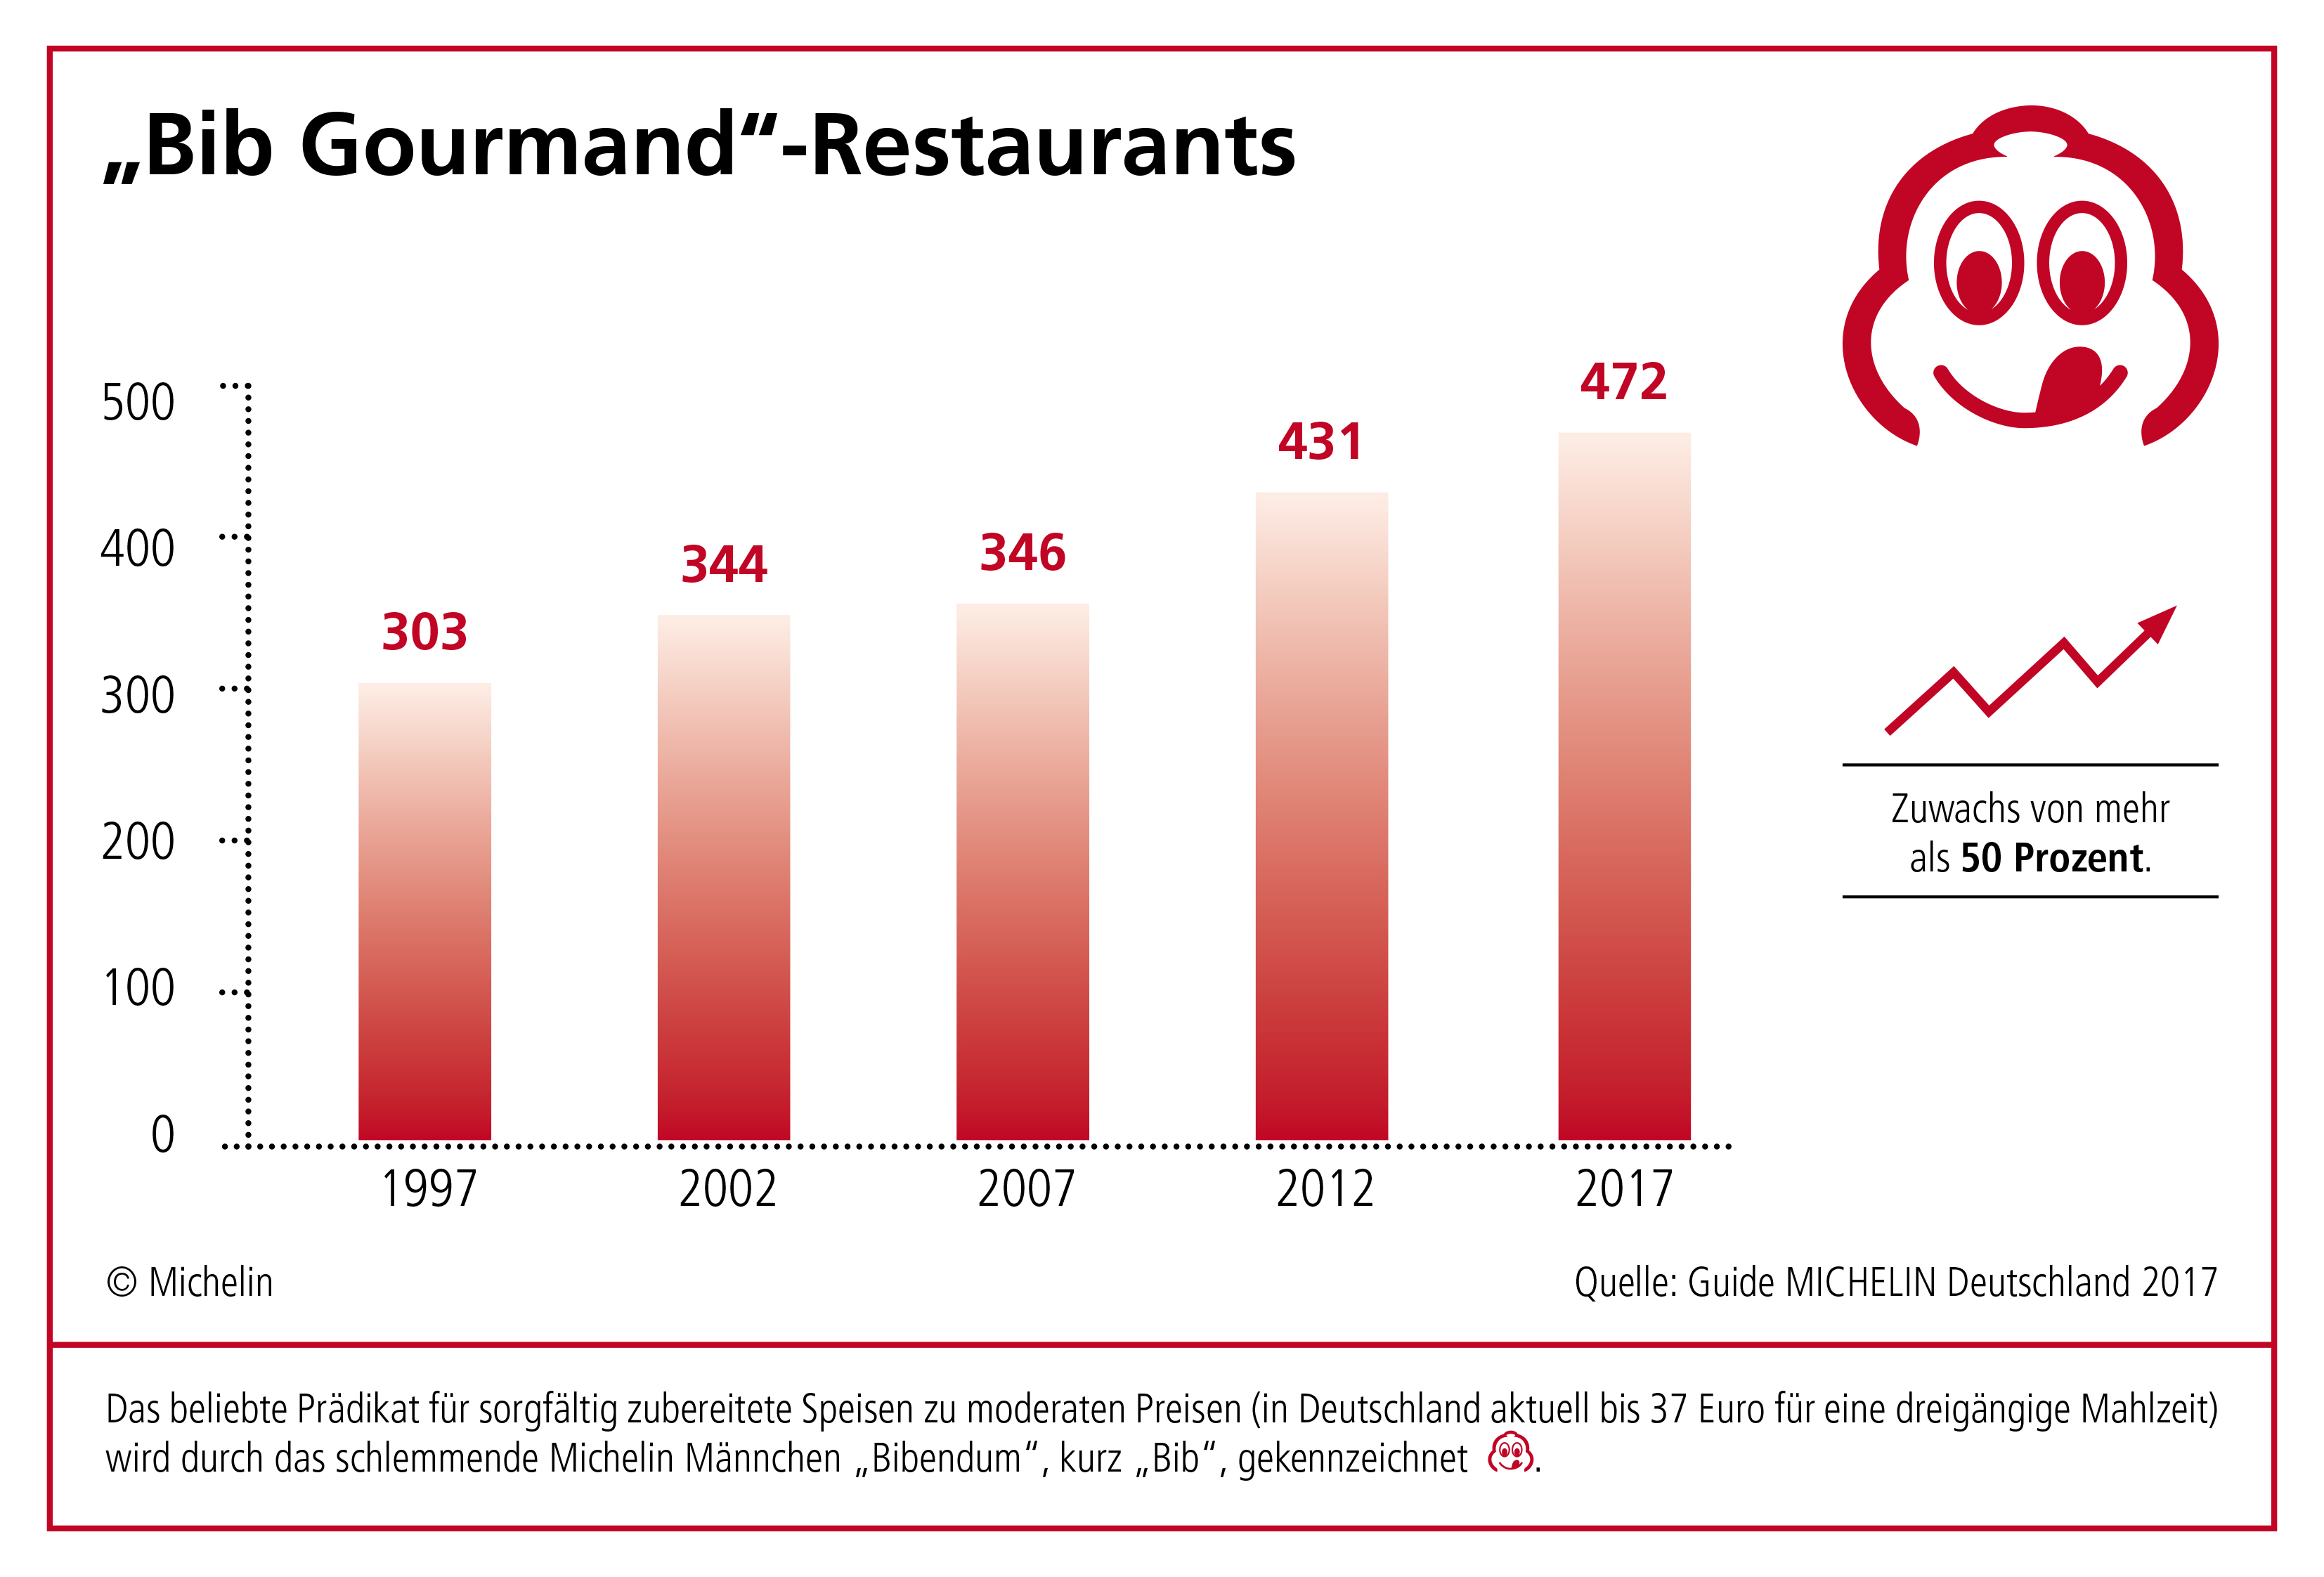 Guide Michelin Bib Gourmand Restaurants 2017